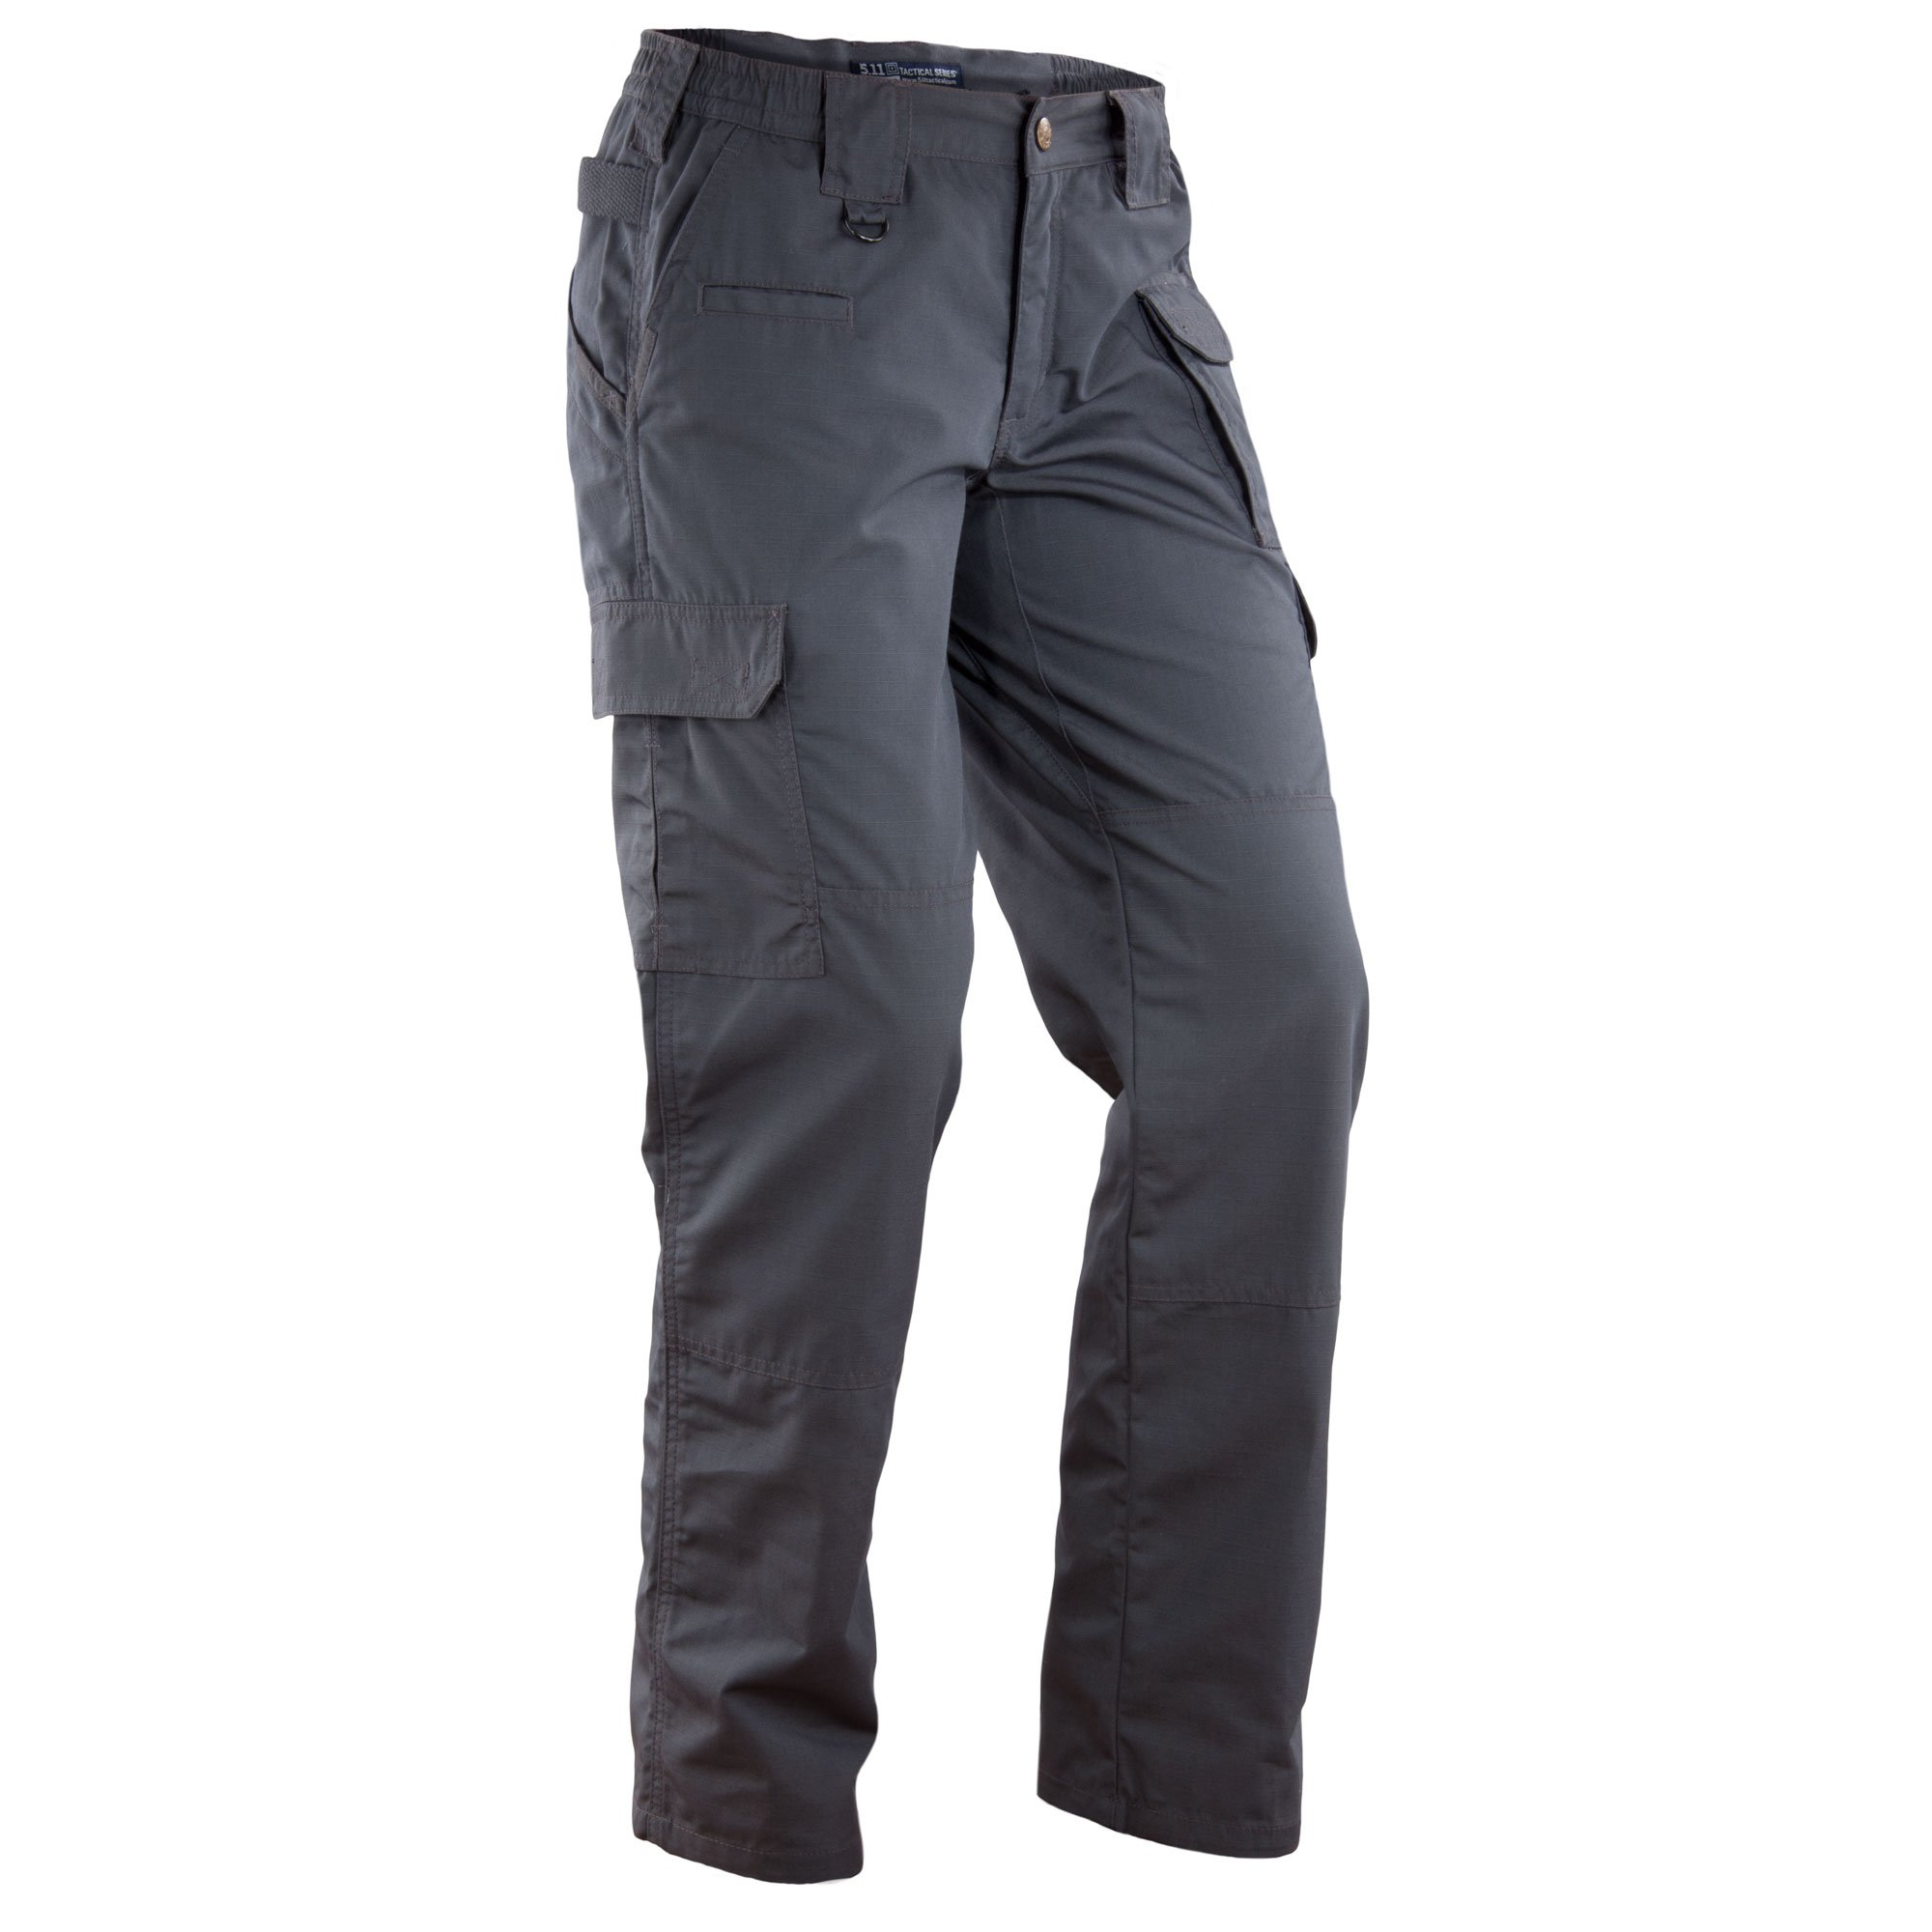 5.11 Women's Taclite Pro Tactical 7 Pocket Cargo Pant Teflon Treated Rip and Water Resistant Style 64360